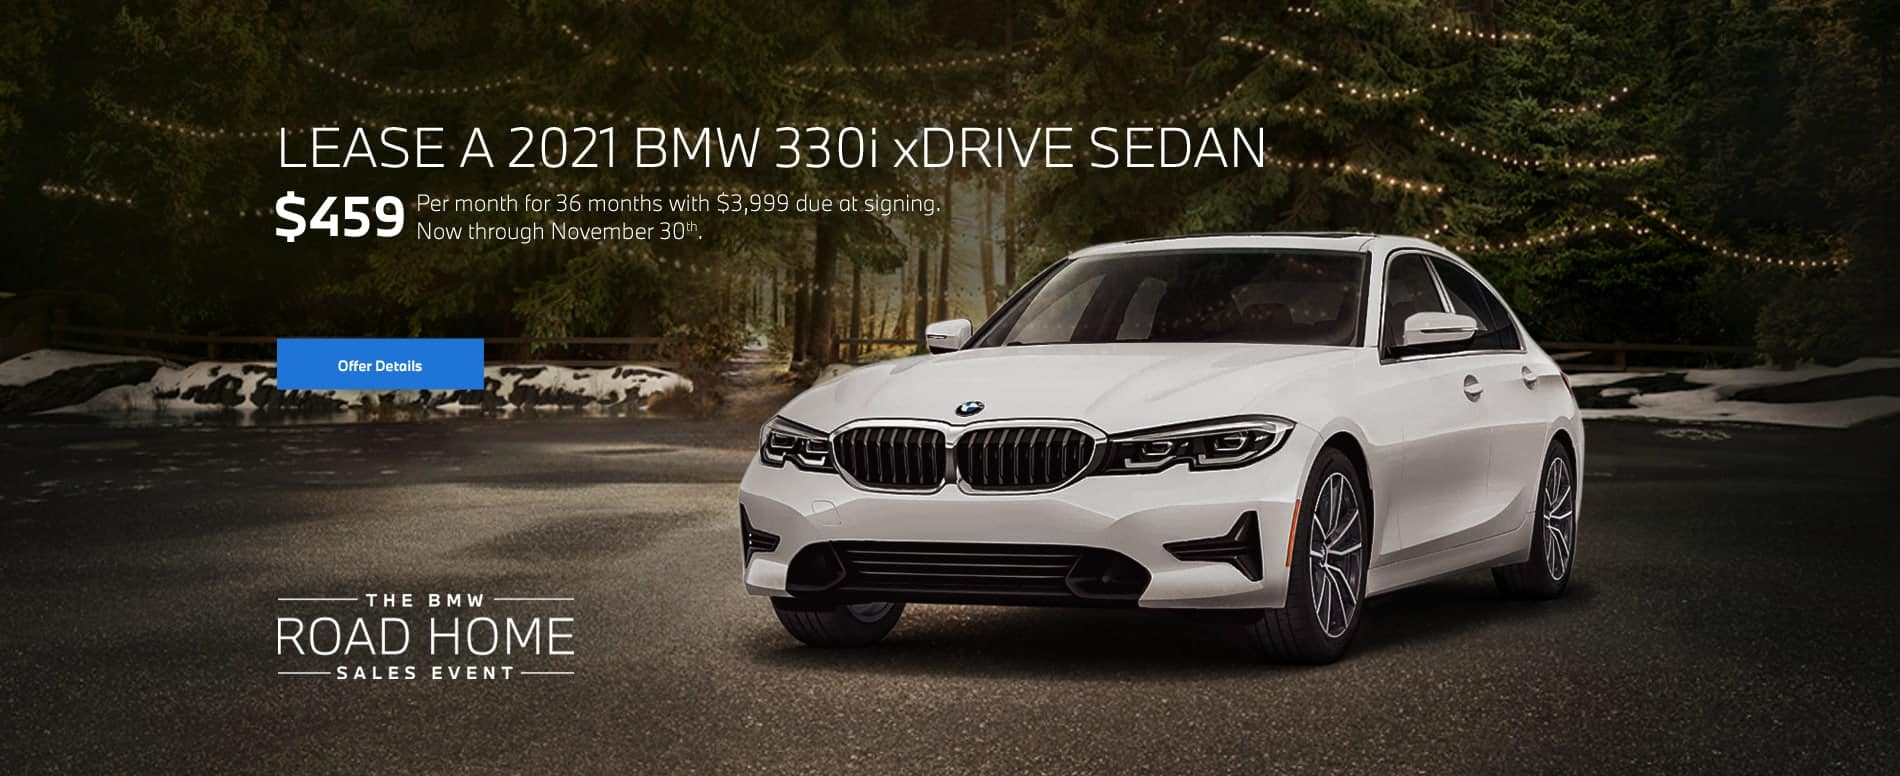 2021 BMW 330i xDrive Sedan Lease for $459/mo